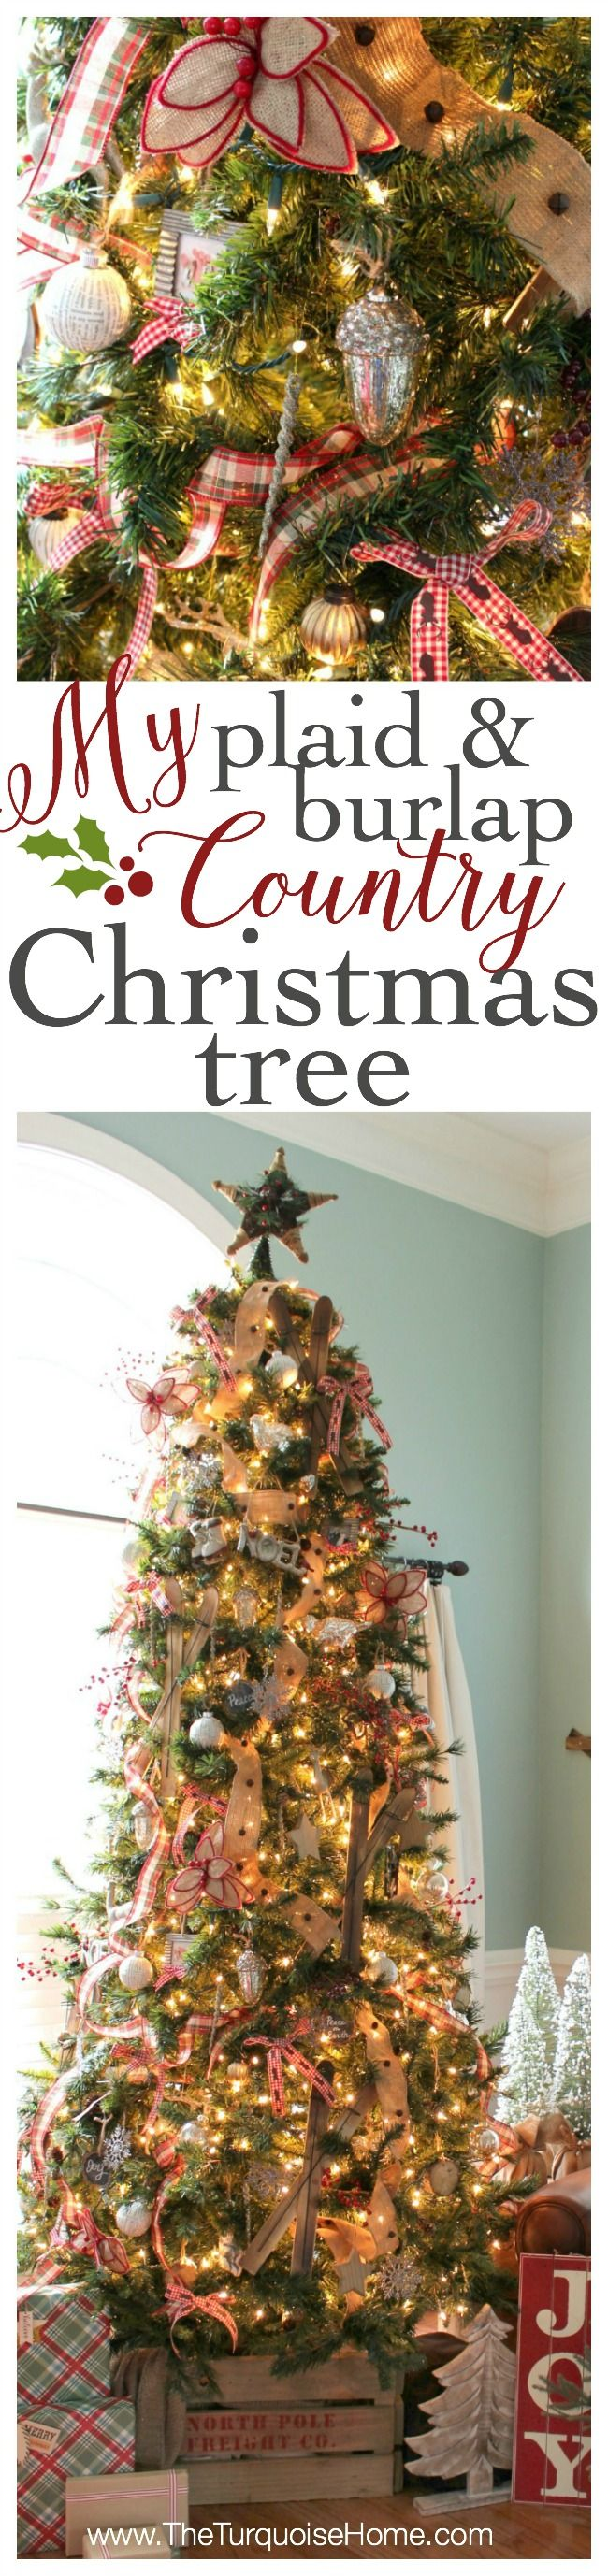 Christmas tree elegantly 12 stepshow to decorate a christmas tree - 309 Best Holiday Christmas Trees Images On Pinterest Merry Christmas Christmas Time And Christmas Crafts